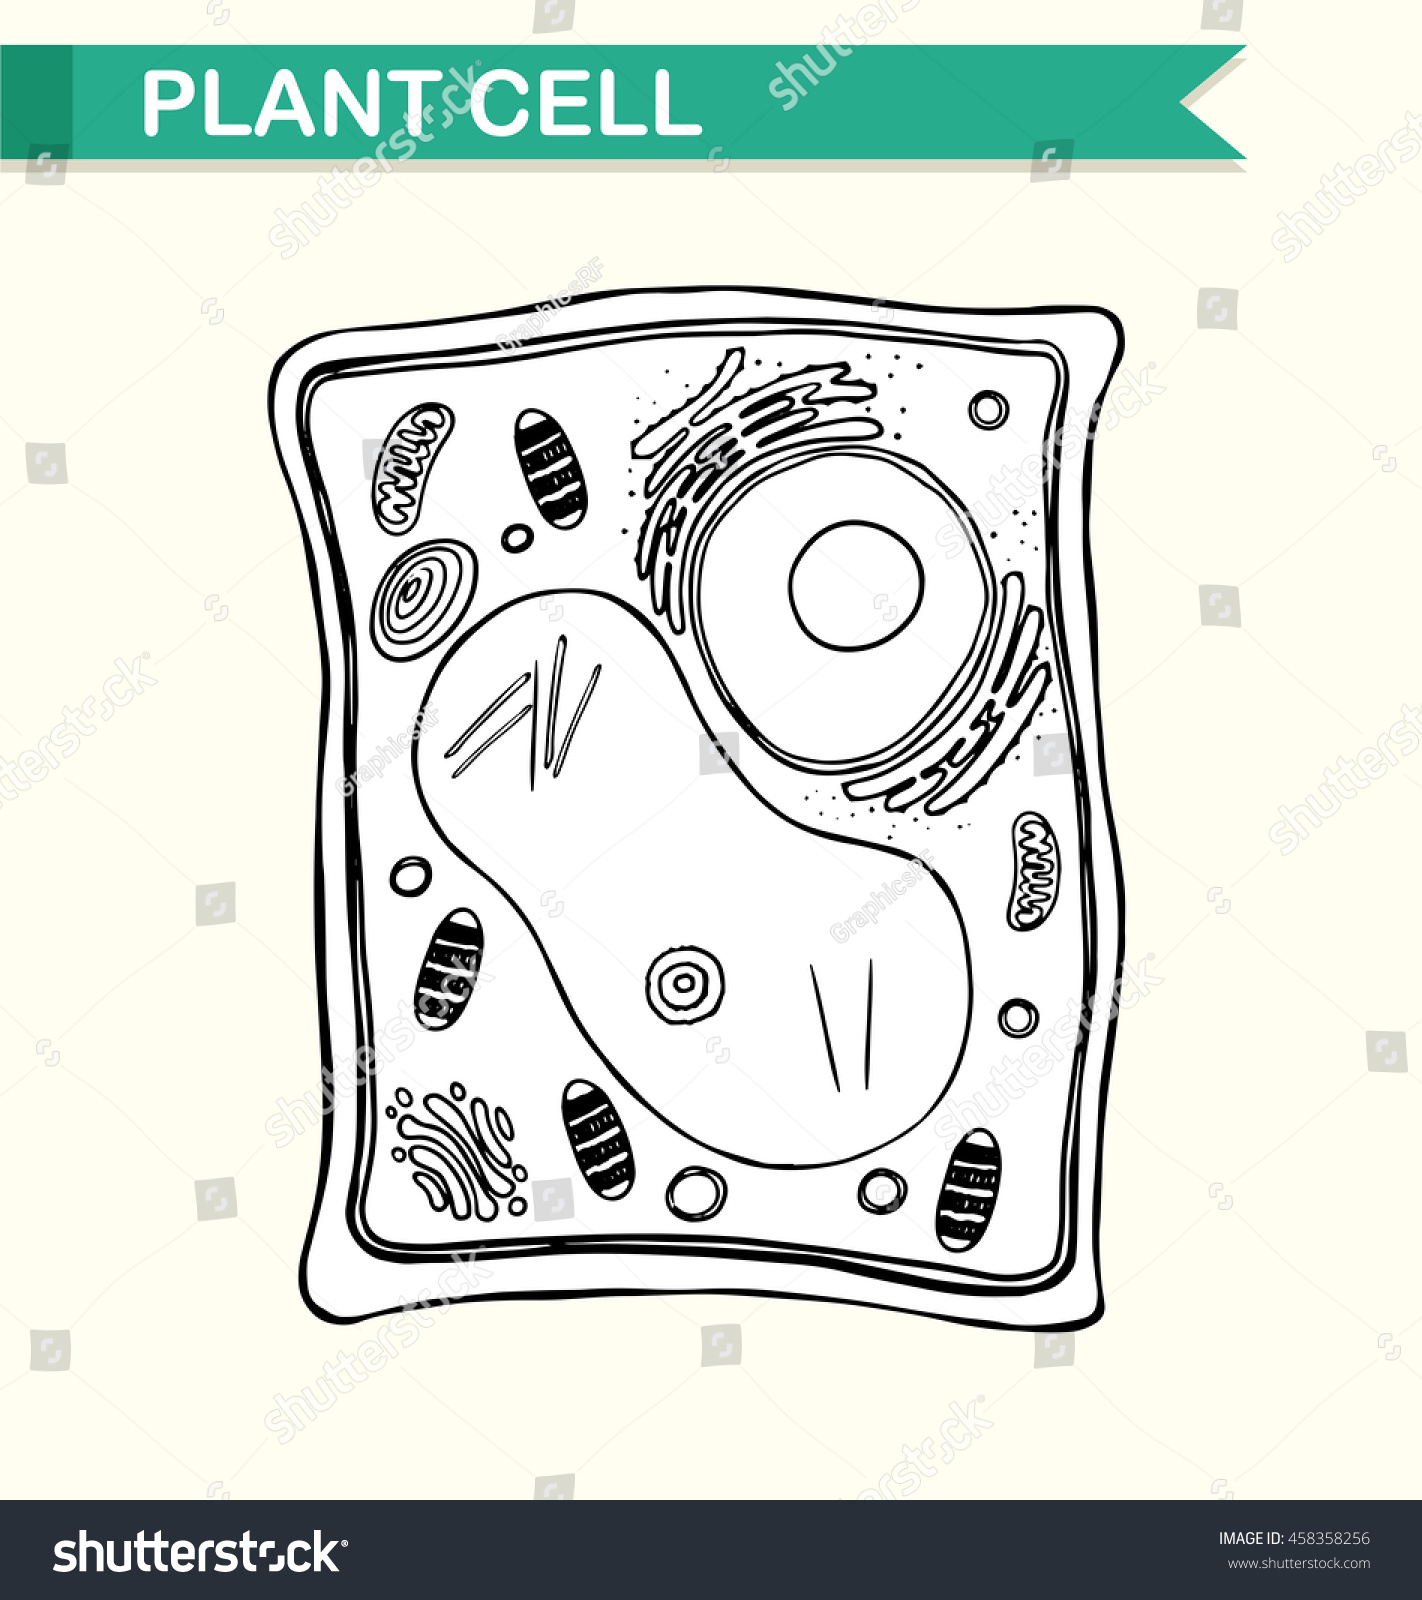 Diagram Showing Plant Cell Black White Stock Vector Royalty Free Model In And Illustration